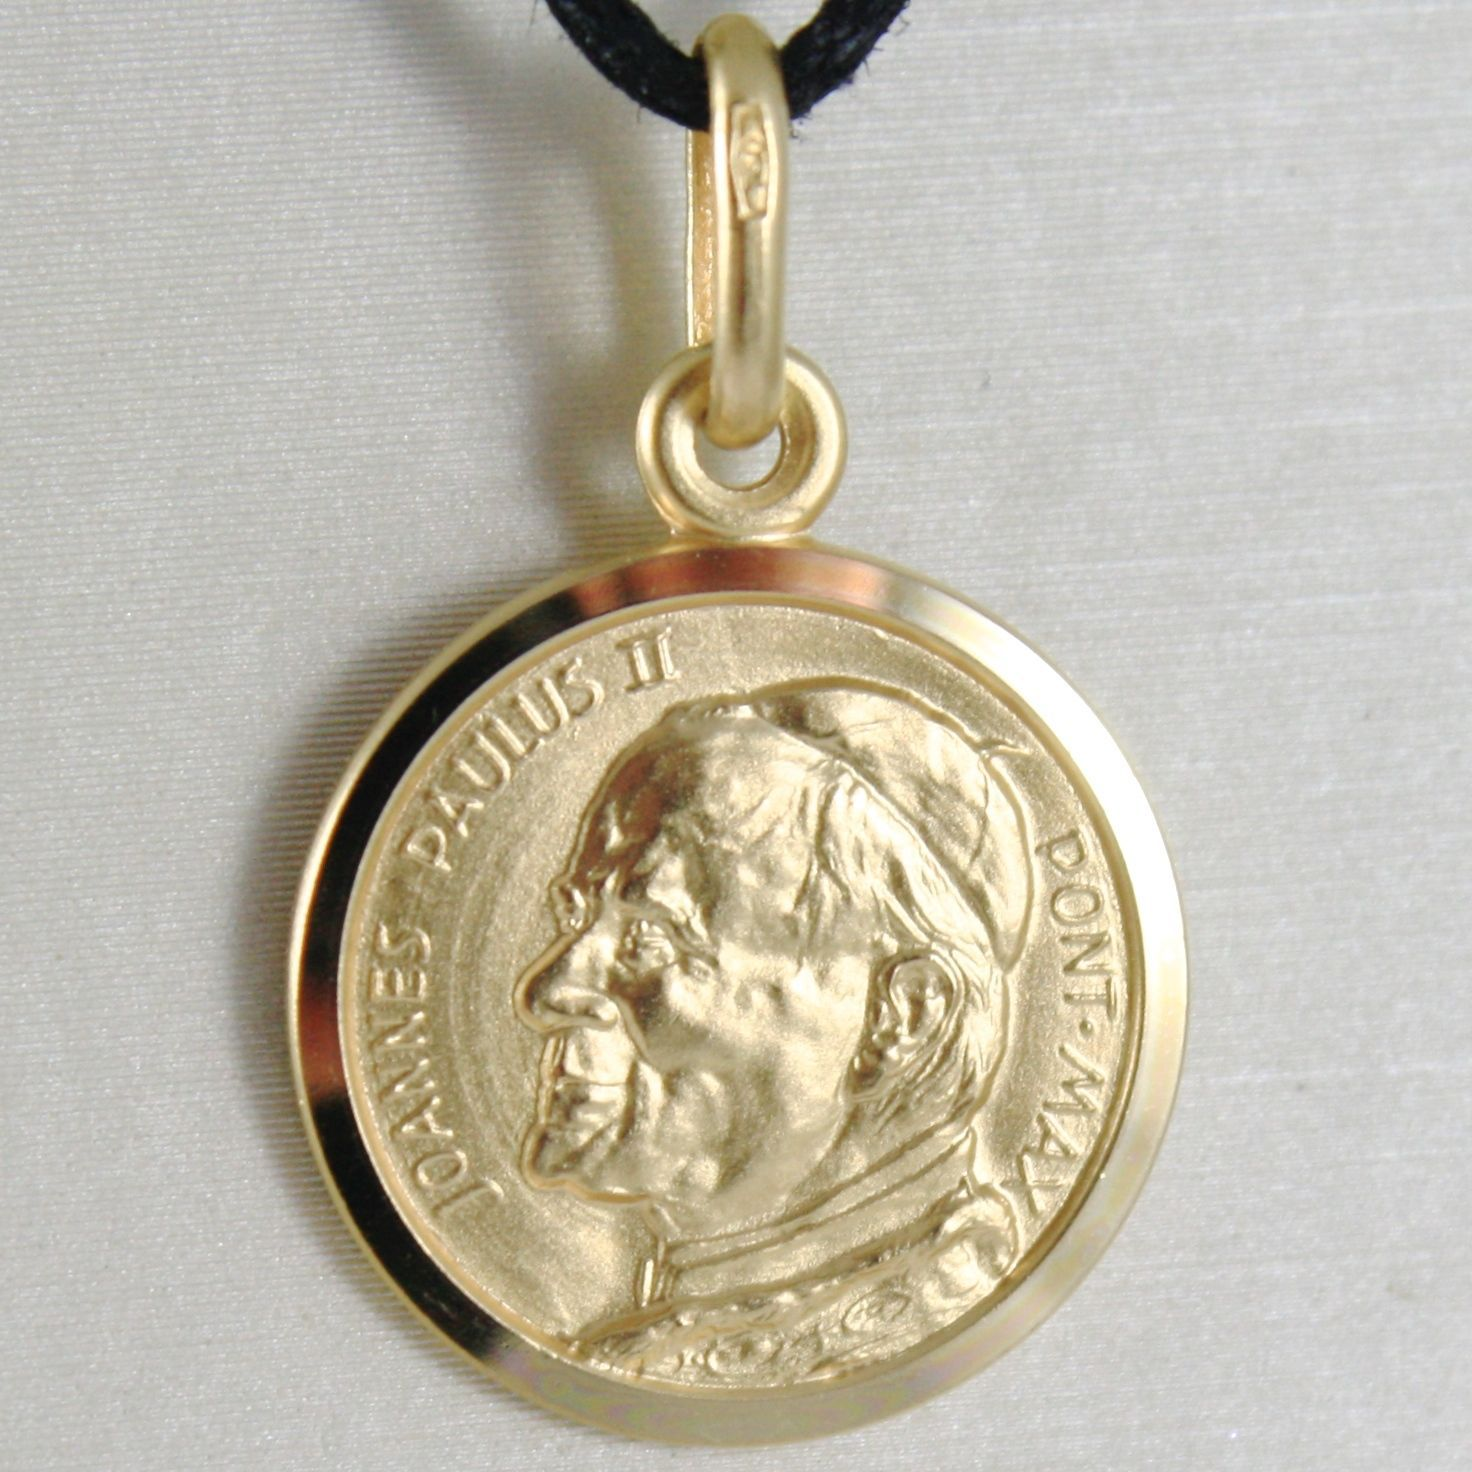 PENDENTIF MÉDAILLE OR JAUNE 750 18K, SANTO PAPA GIOVANNI PAOLO II 15 MM, ITALIE